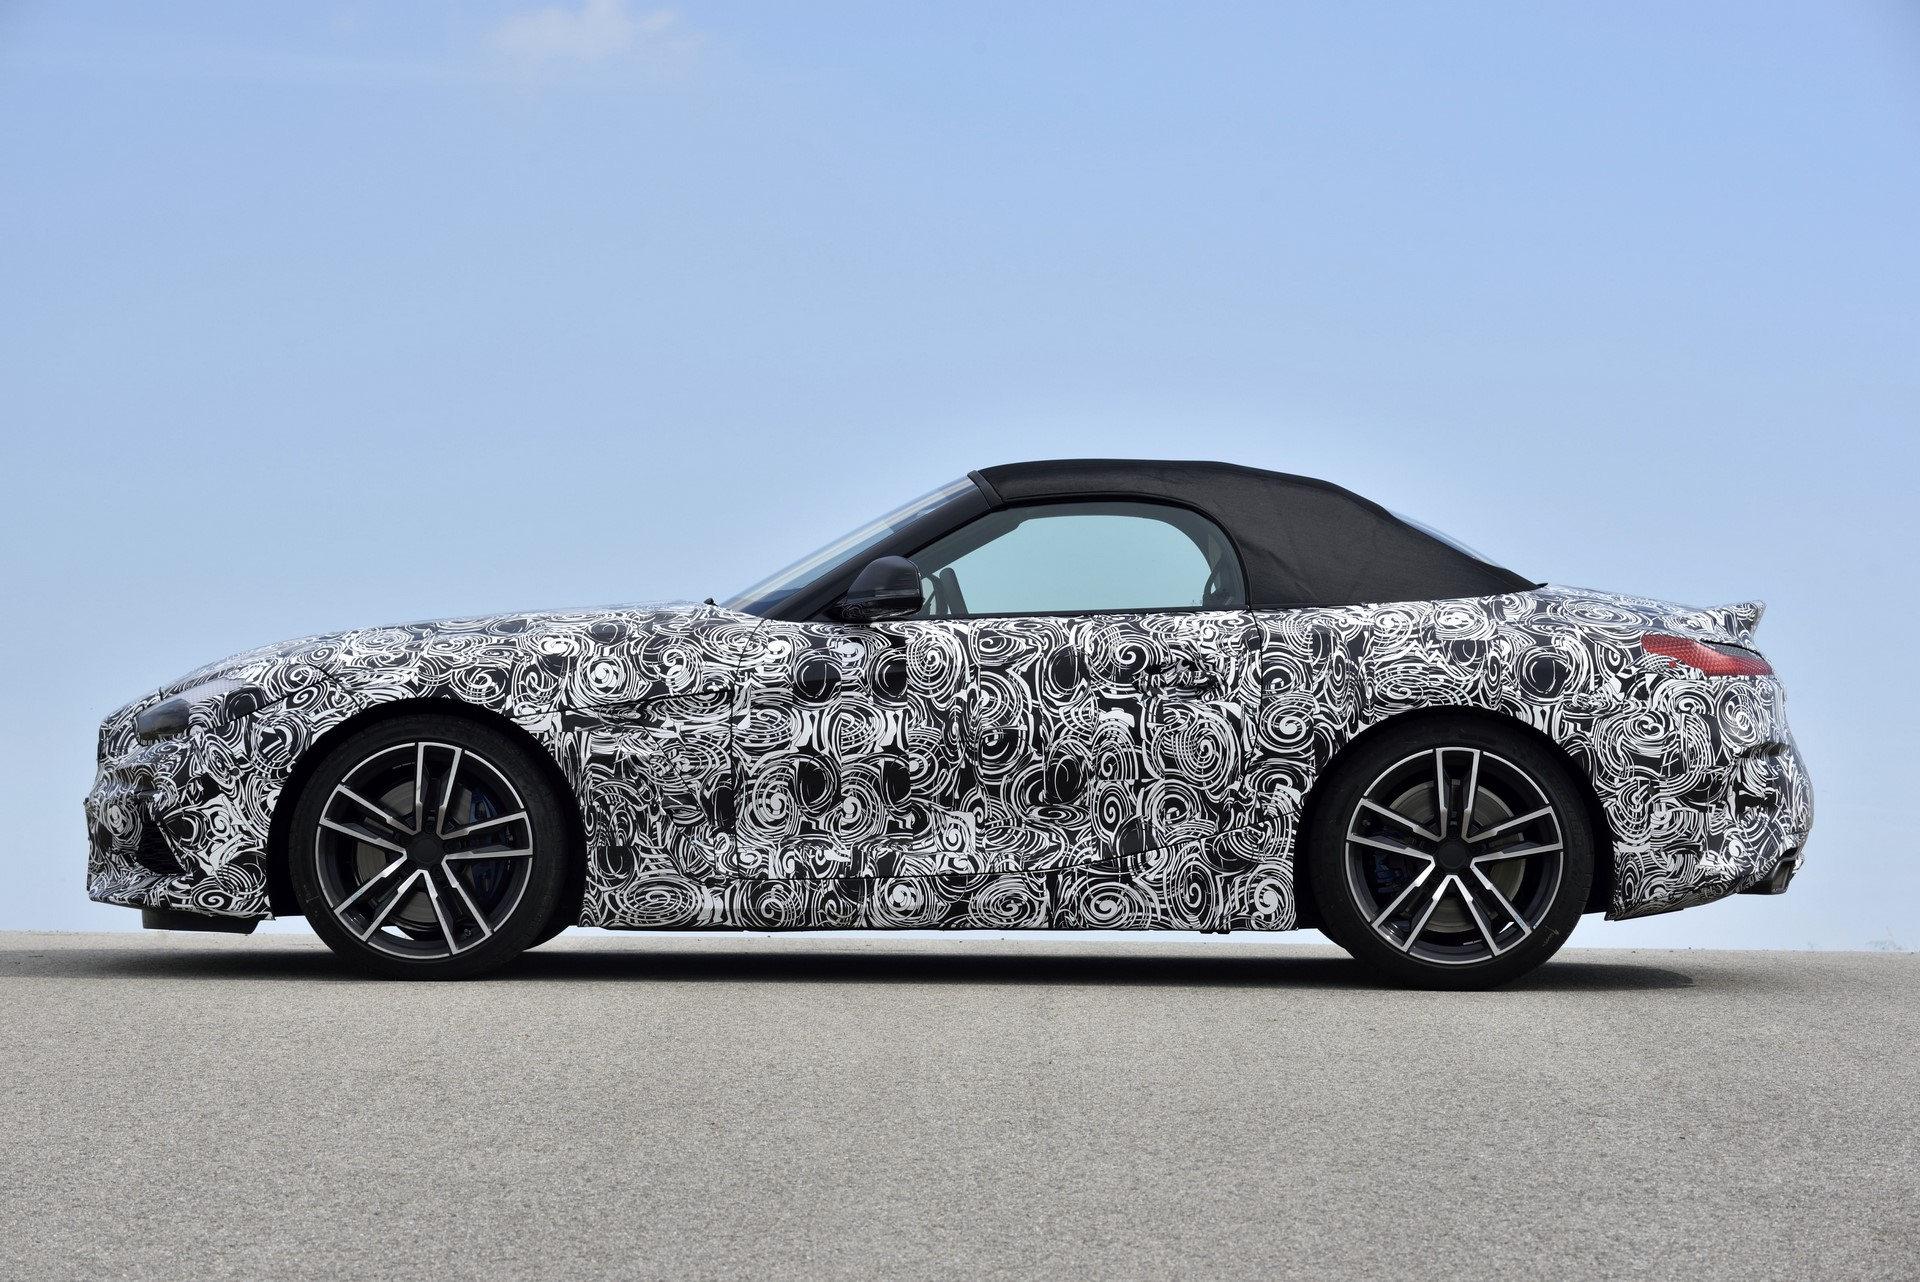 BMW Z4 M40i 2019 official spy photos (39)